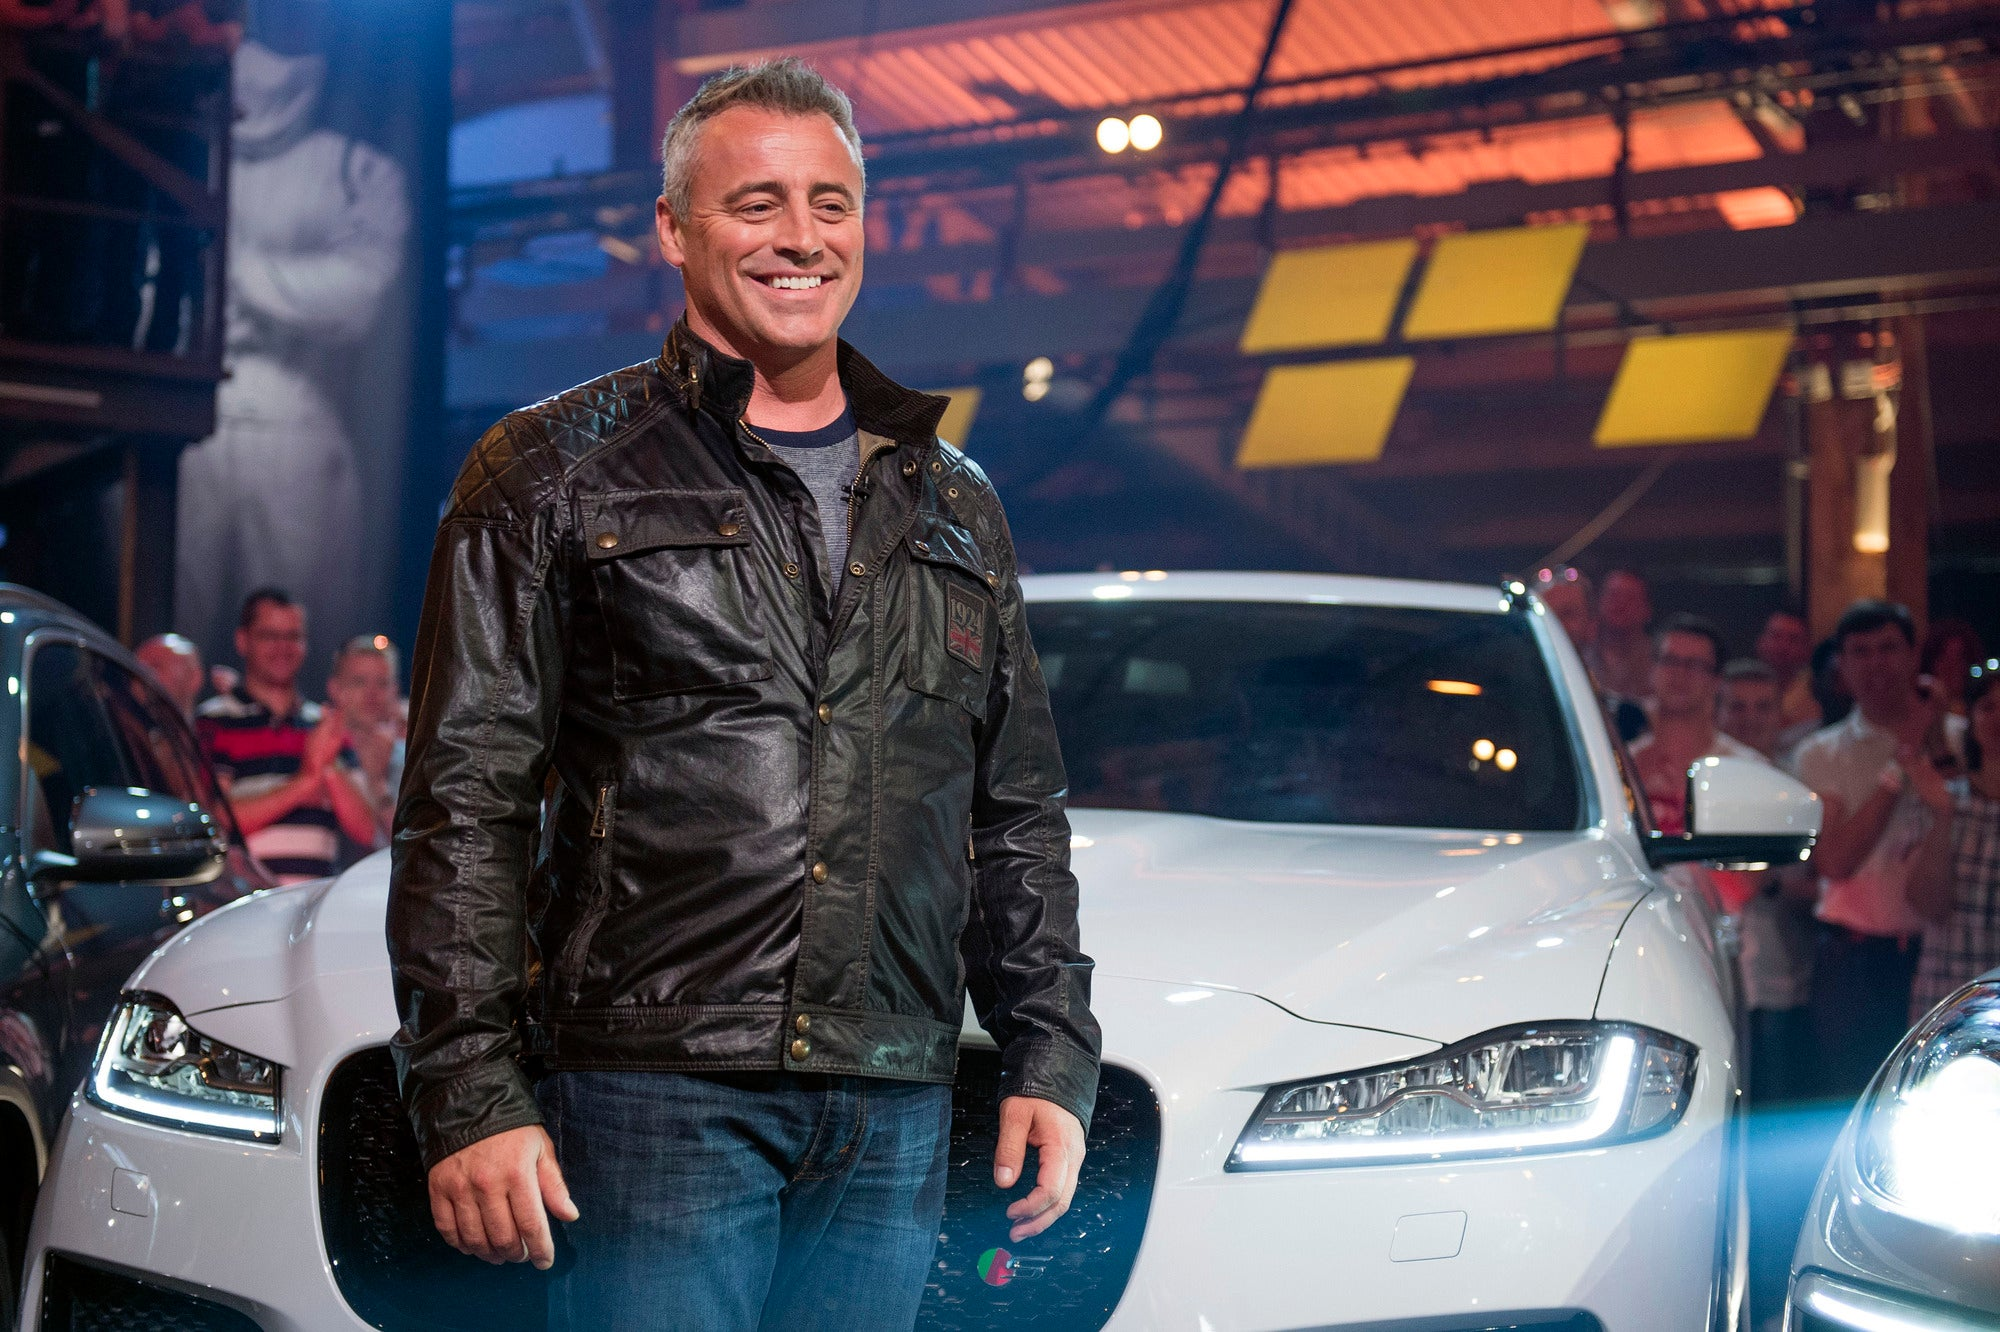 Top Gear Latest News Breaking Stories And Comment The Independent - Top gear car show